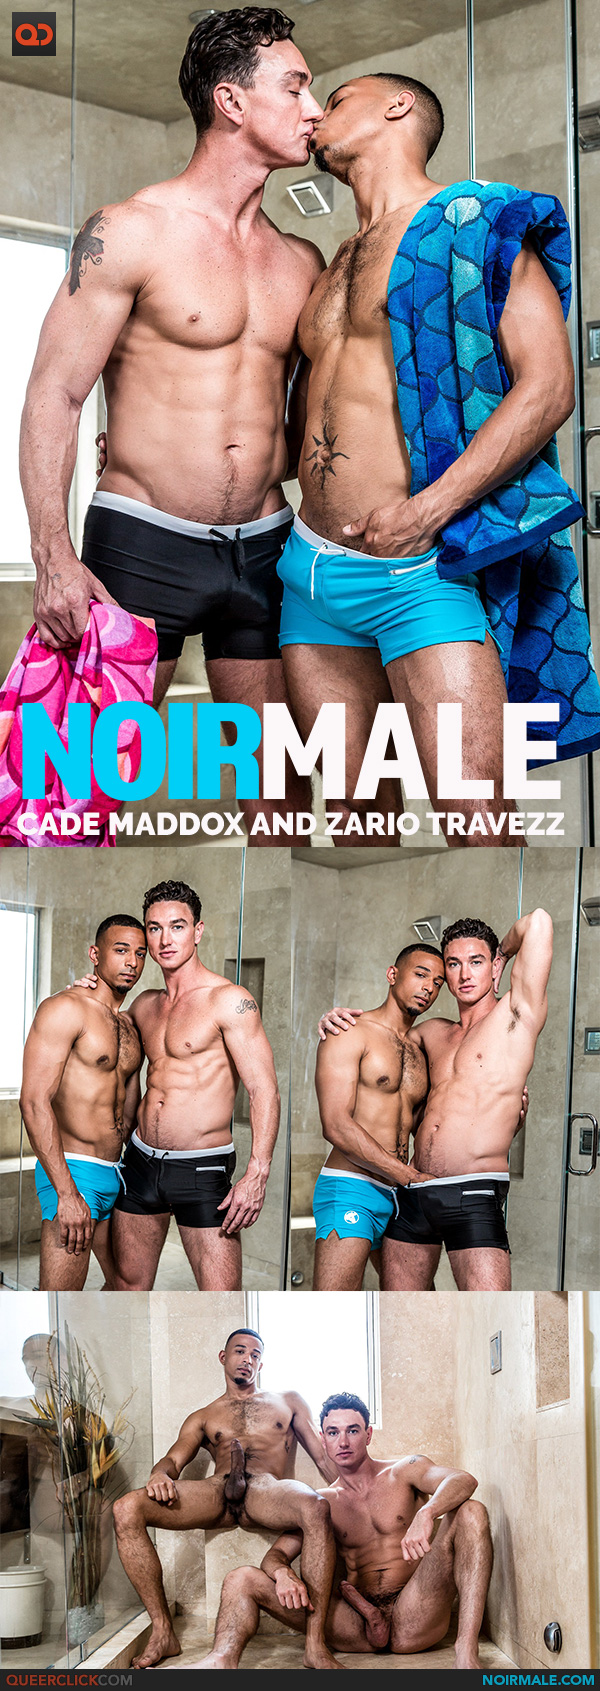 Noir Male: Cade Maddox and Zario Travezz